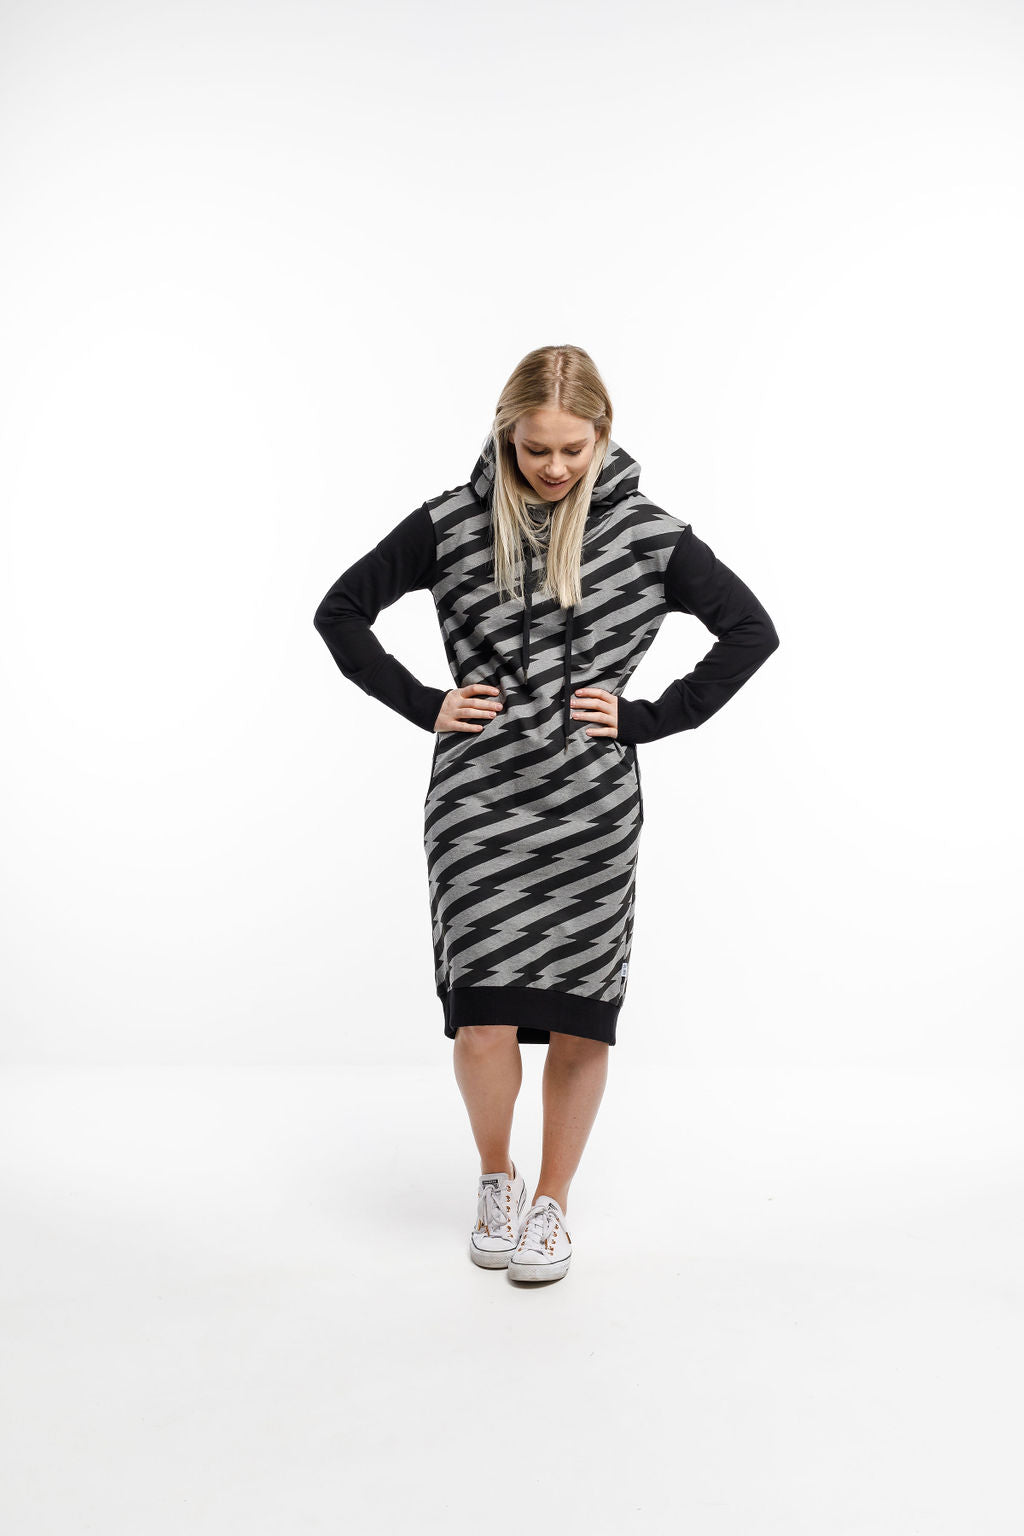 HOODED SWEATER DRESS - Lightning with Black sleeves